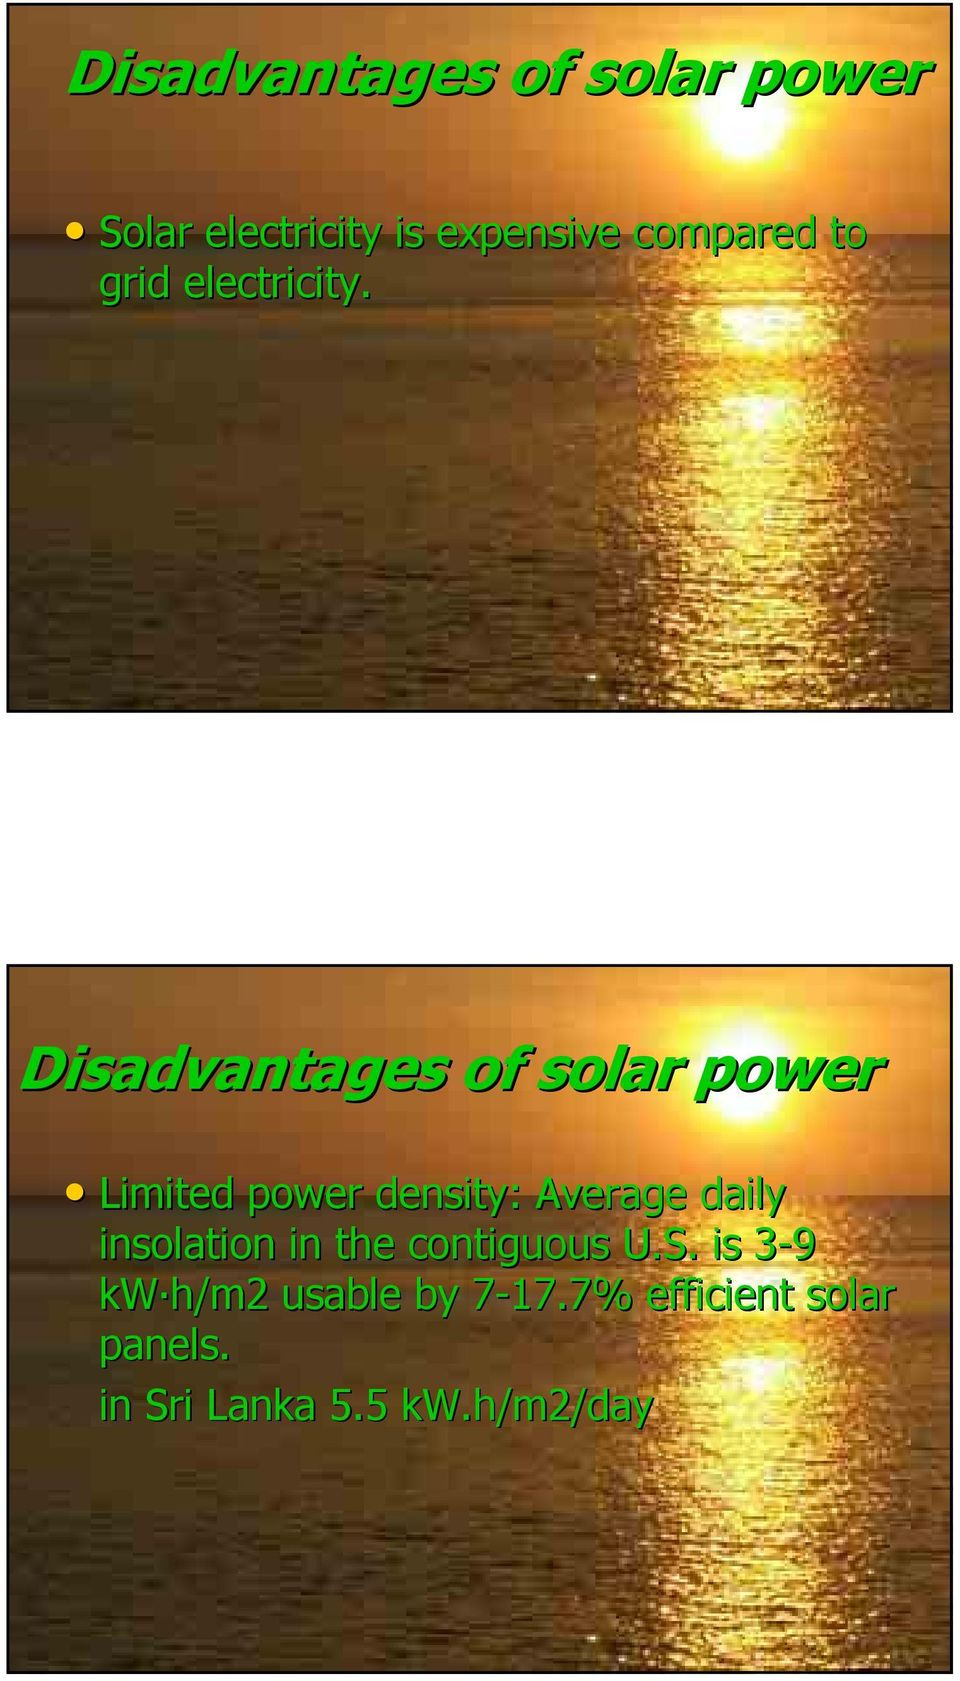 Disadvantages of solar power Limited power density: Average daily